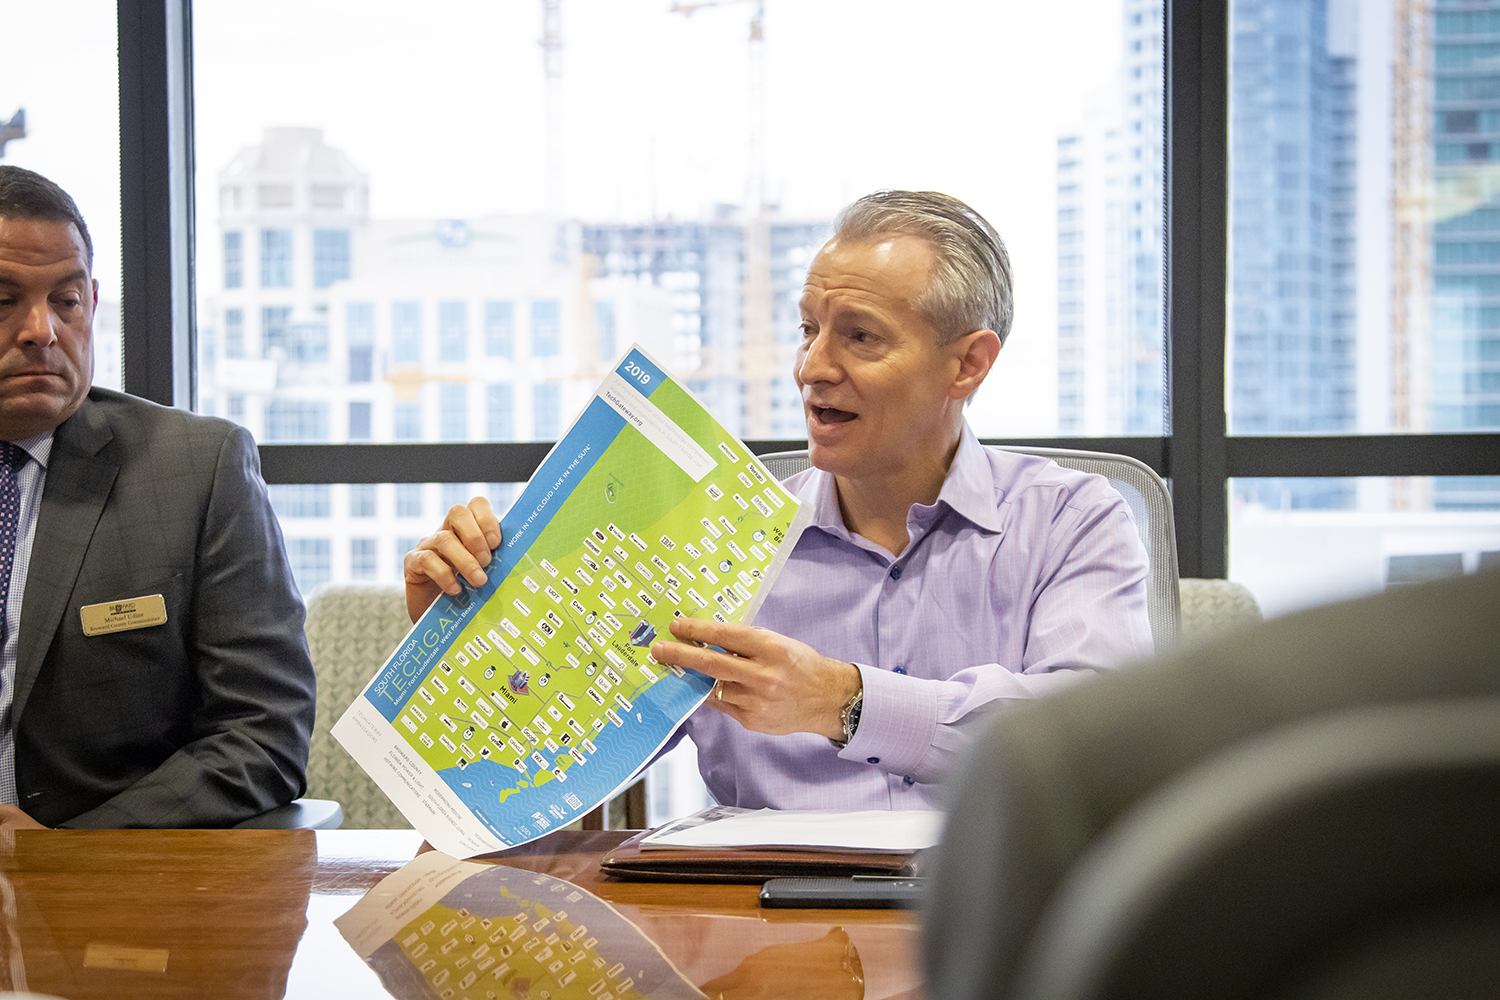 MotionPoint CEO Will Fleming holds a TechGateway map, which provides a visual reference to the abundance of tech firms in South Florida